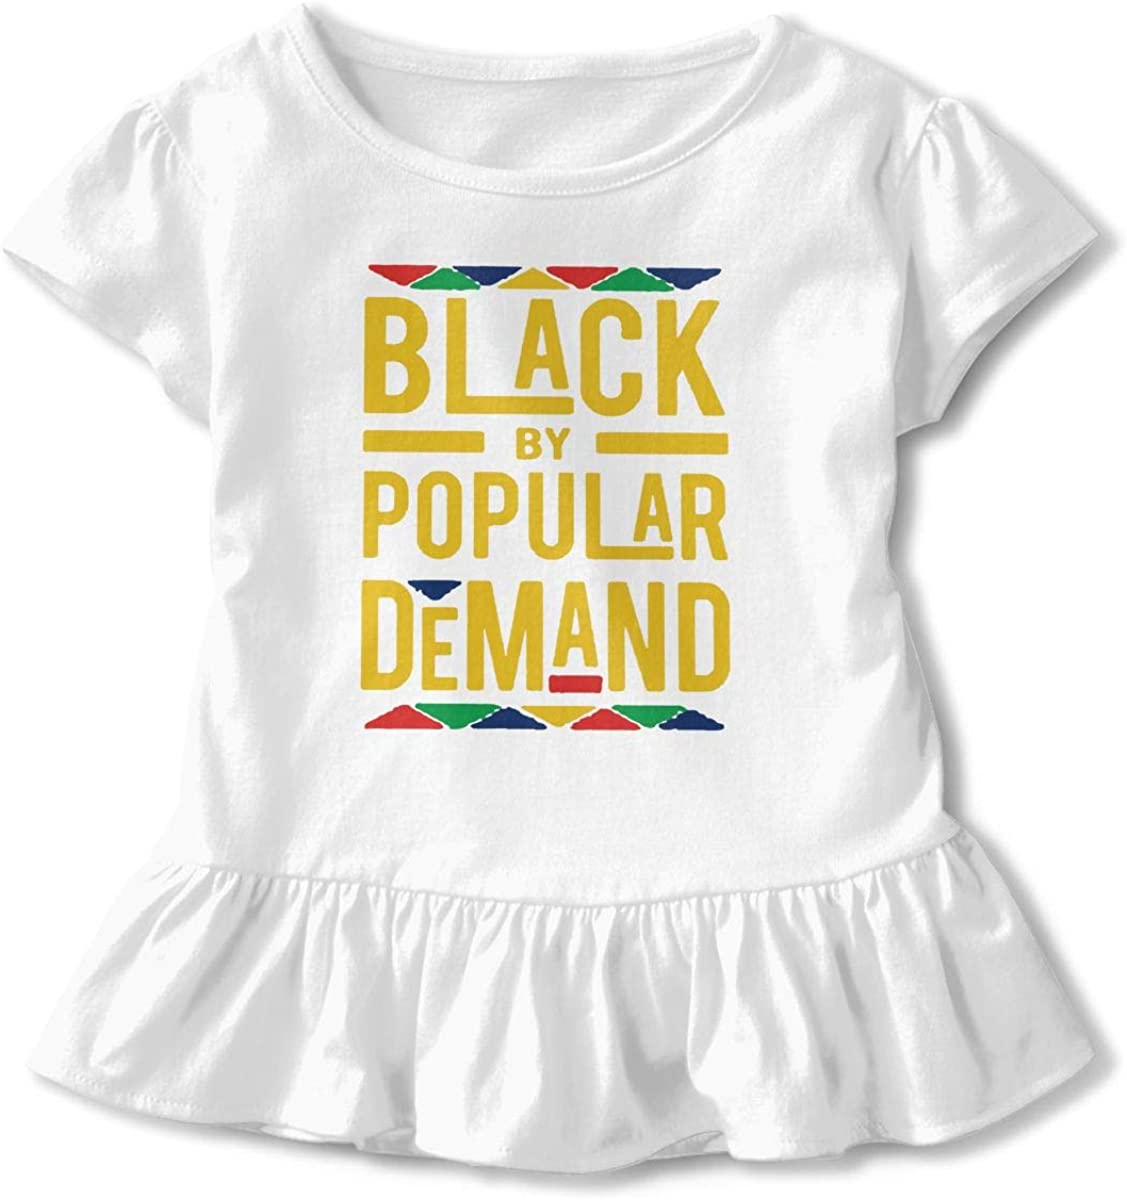 Black by Popular Demand Baby Skirts Stylish Kids T Shirt Dress Comfortable Flounces Outfits